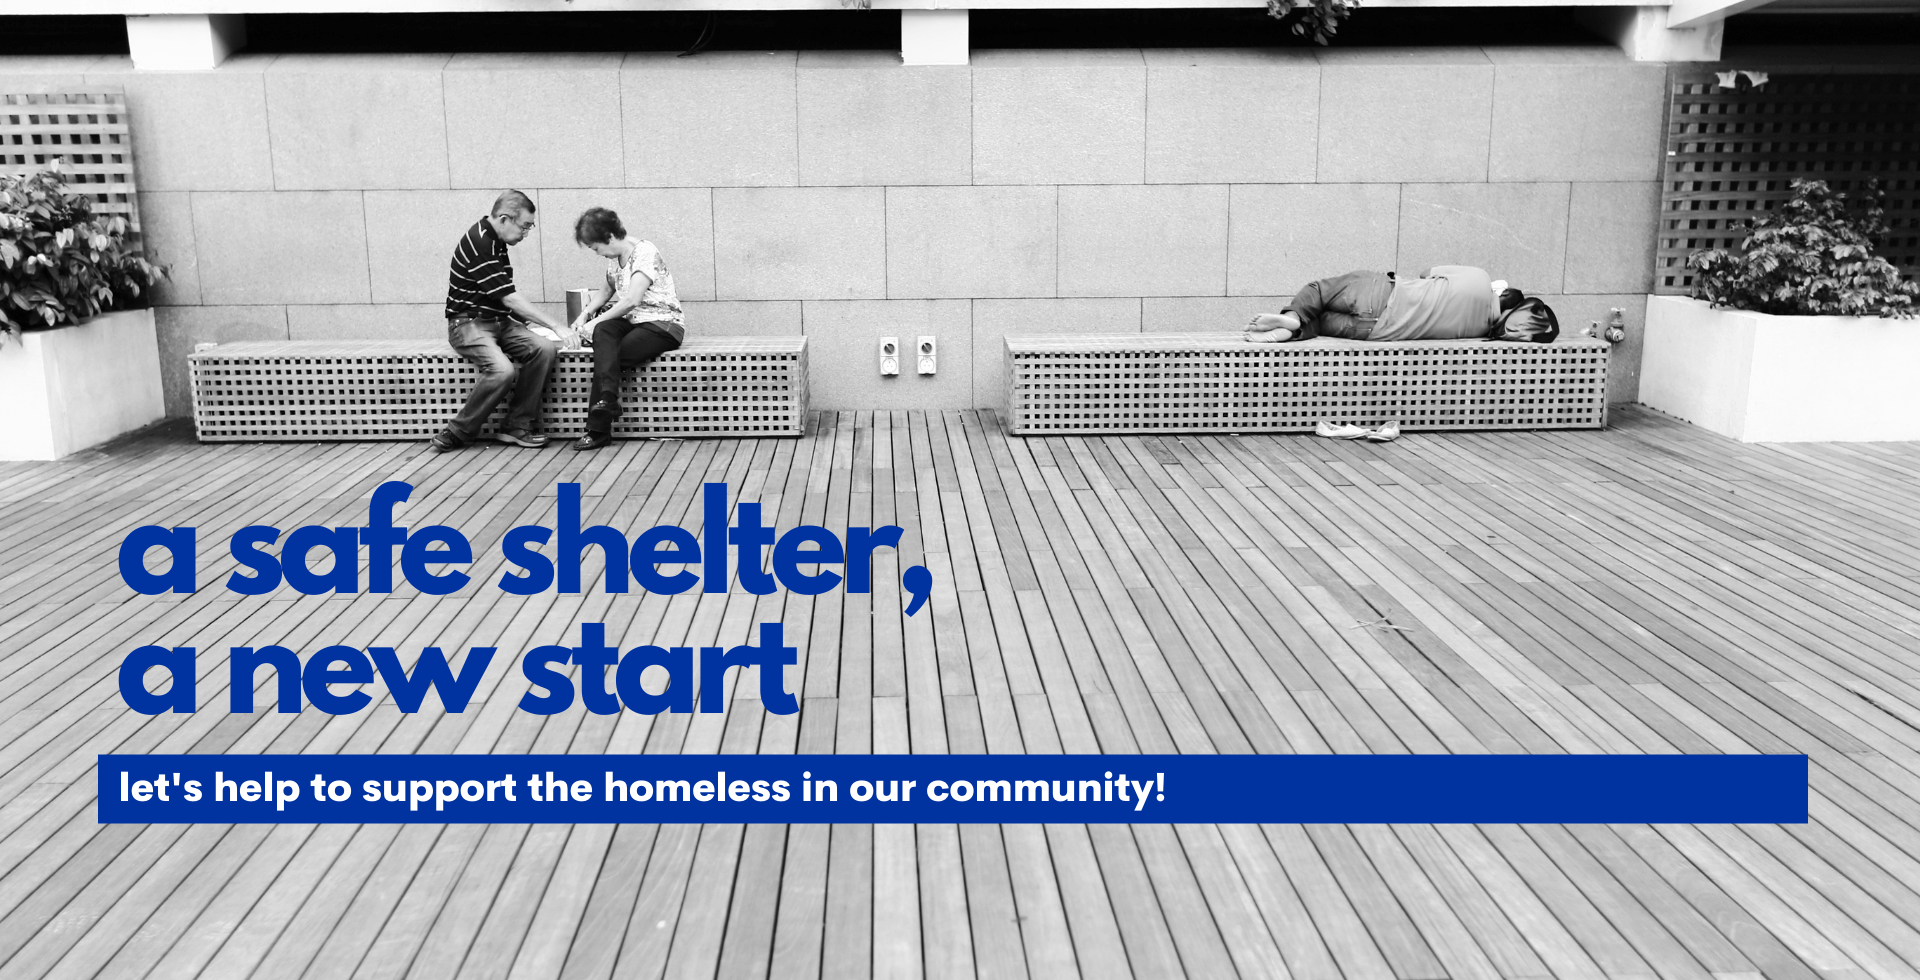 Help to support the homeless in our community!